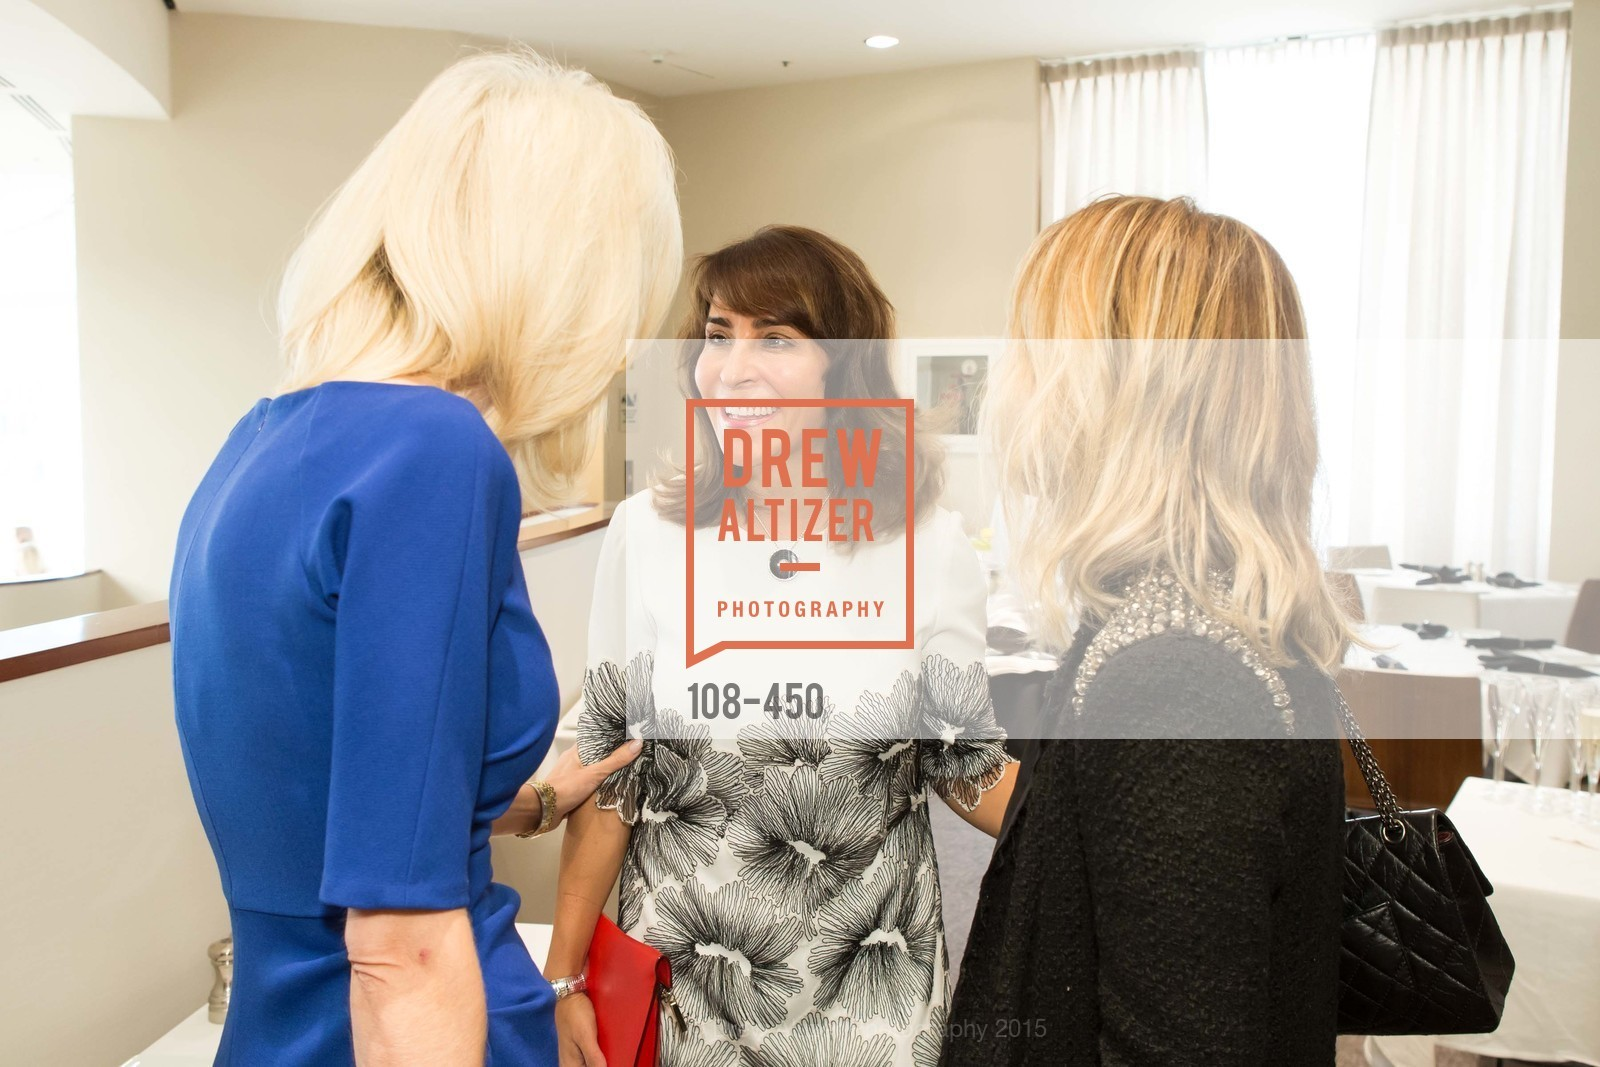 Claire Fluhr, Lela Rose Book Signing and Luncheon at Neiman Marcus, Neiman Marcus, November 5th, 2015,Drew Altizer, Drew Altizer Photography, full-service agency, private events, San Francisco photographer, photographer california